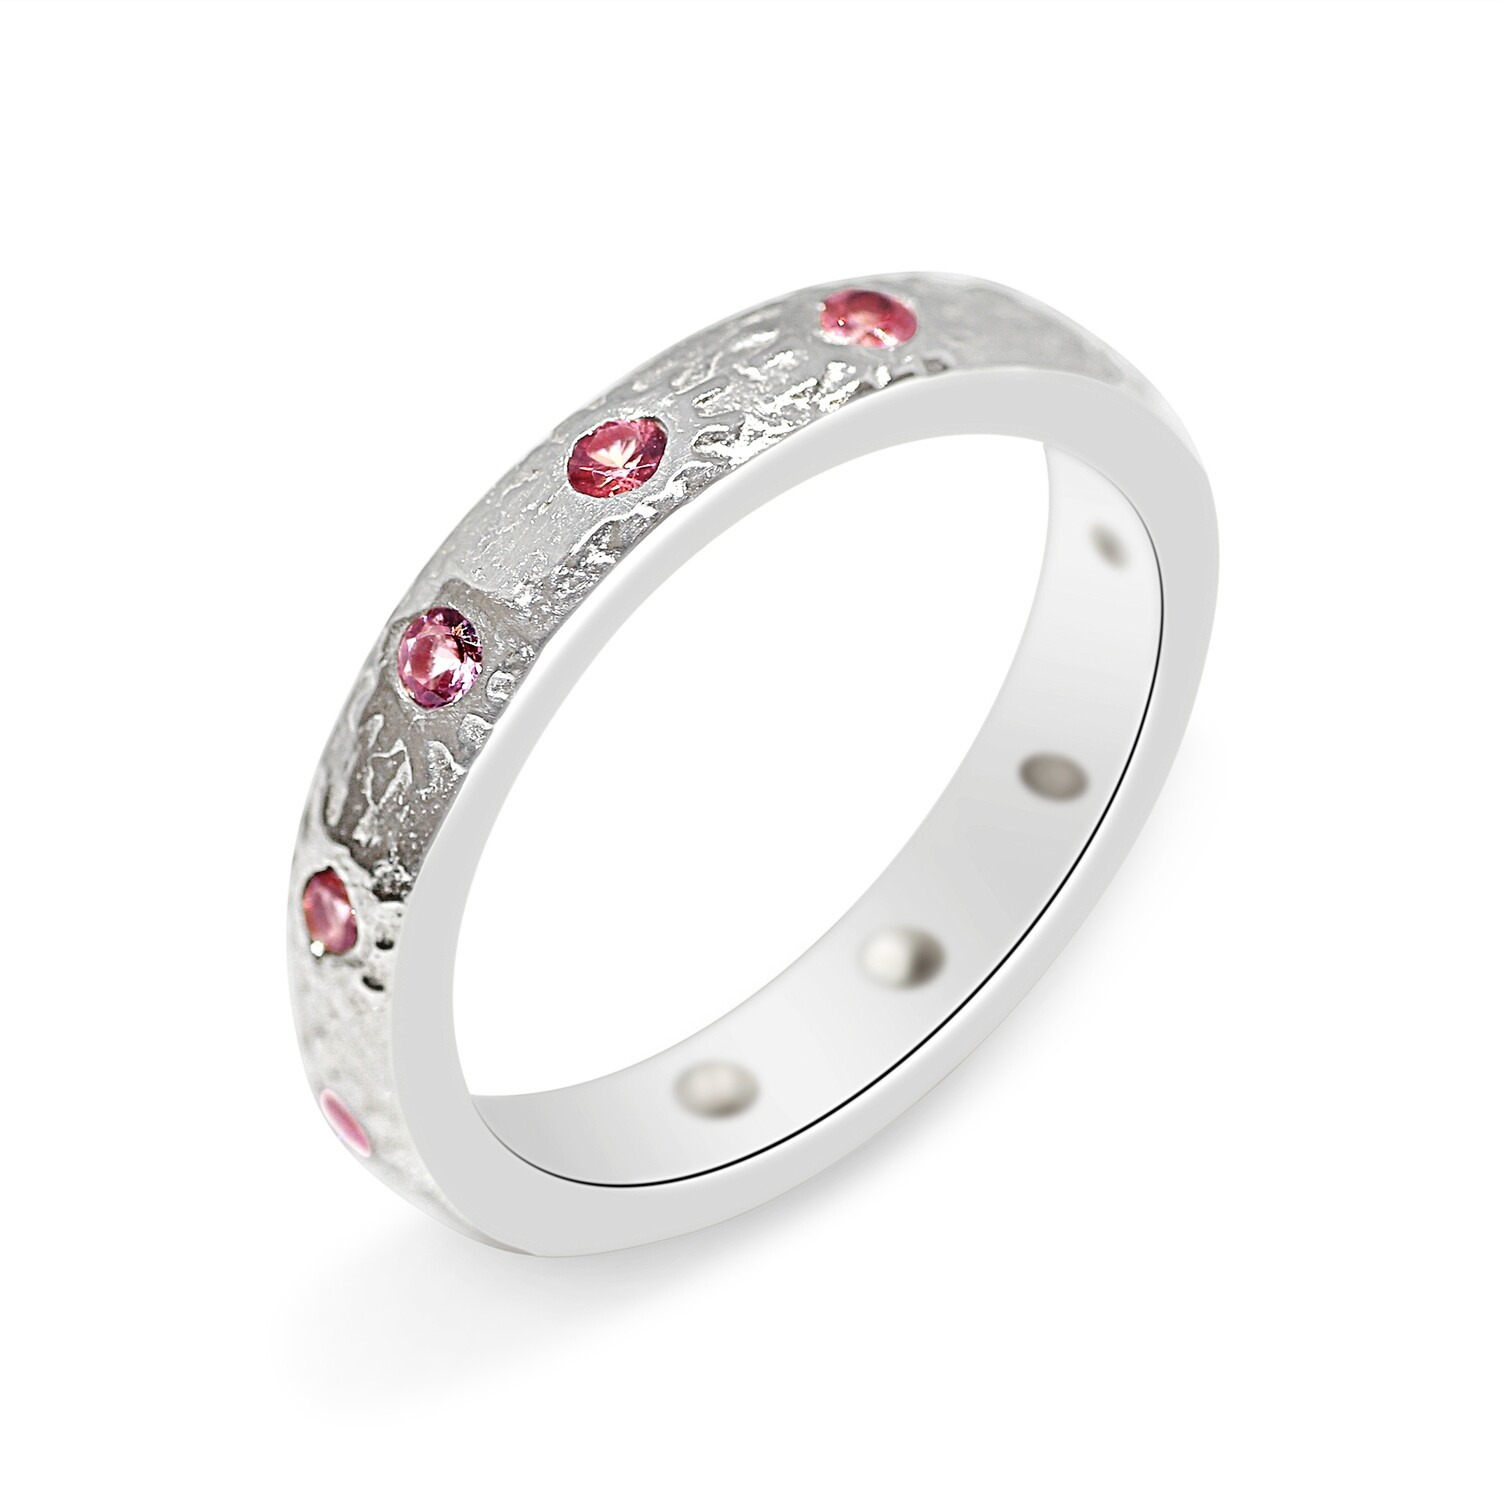 Pink Spinel Ring Sterling Silver 925